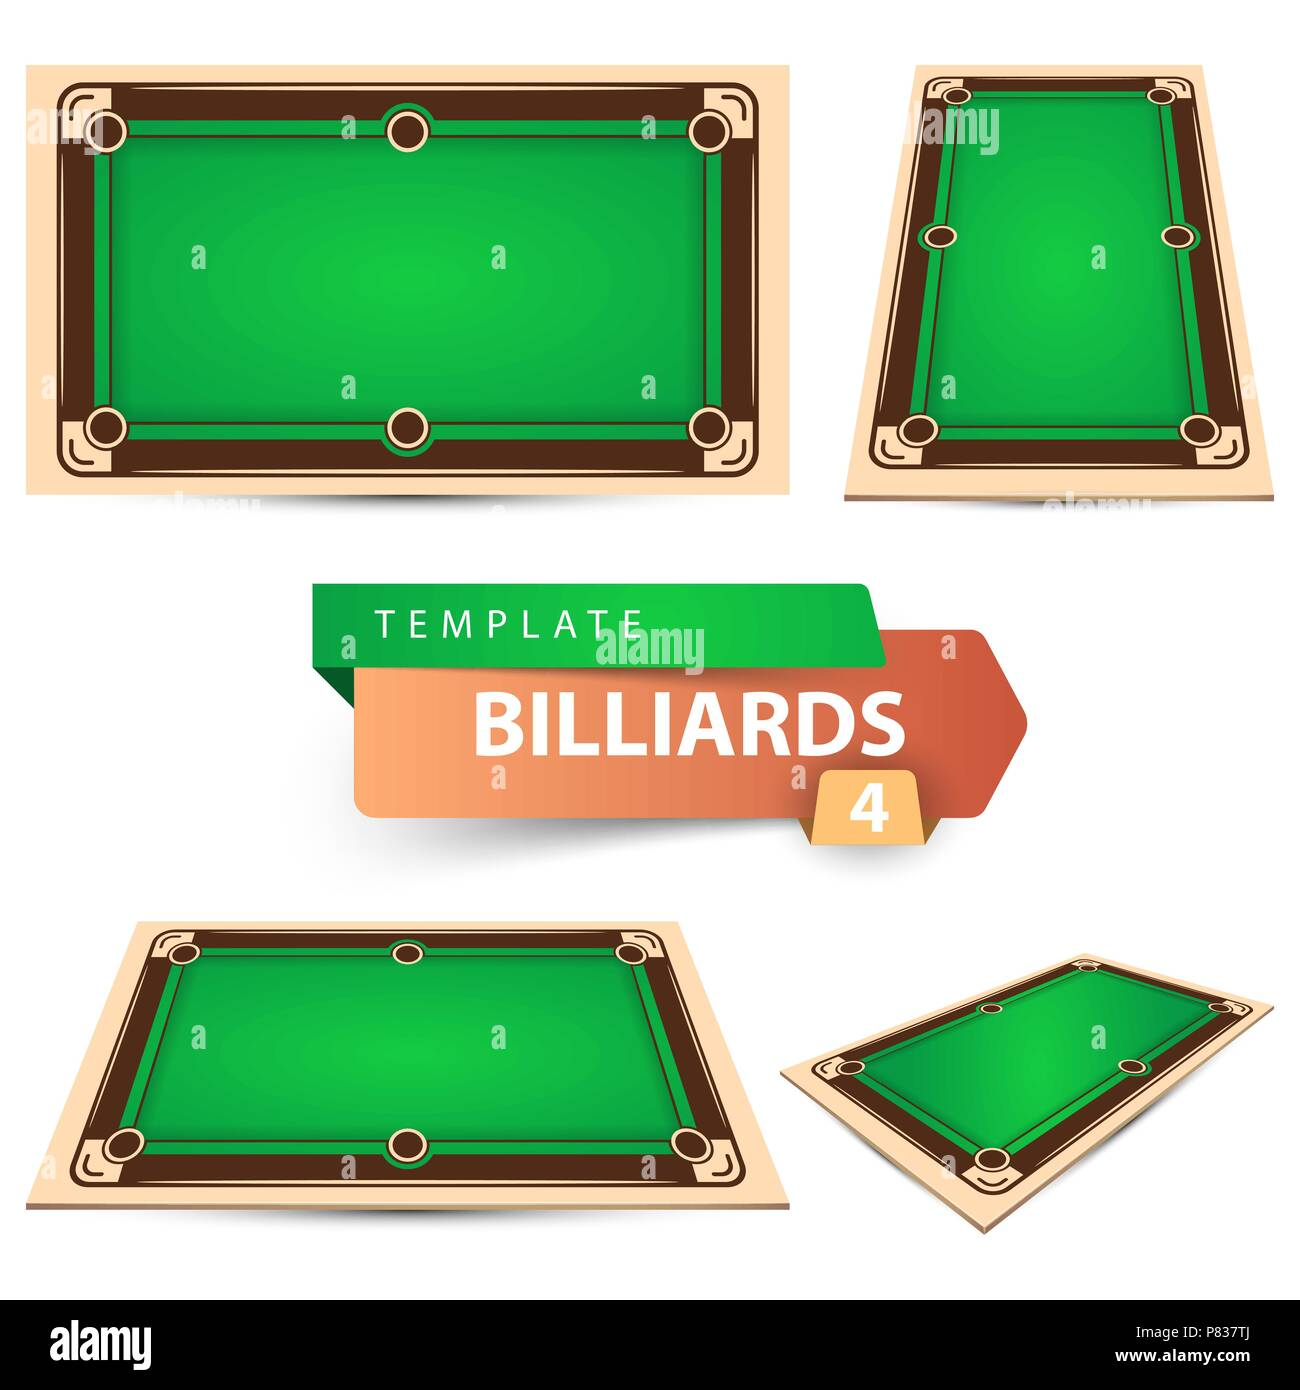 Billiard game template. Four items. - Stock Image